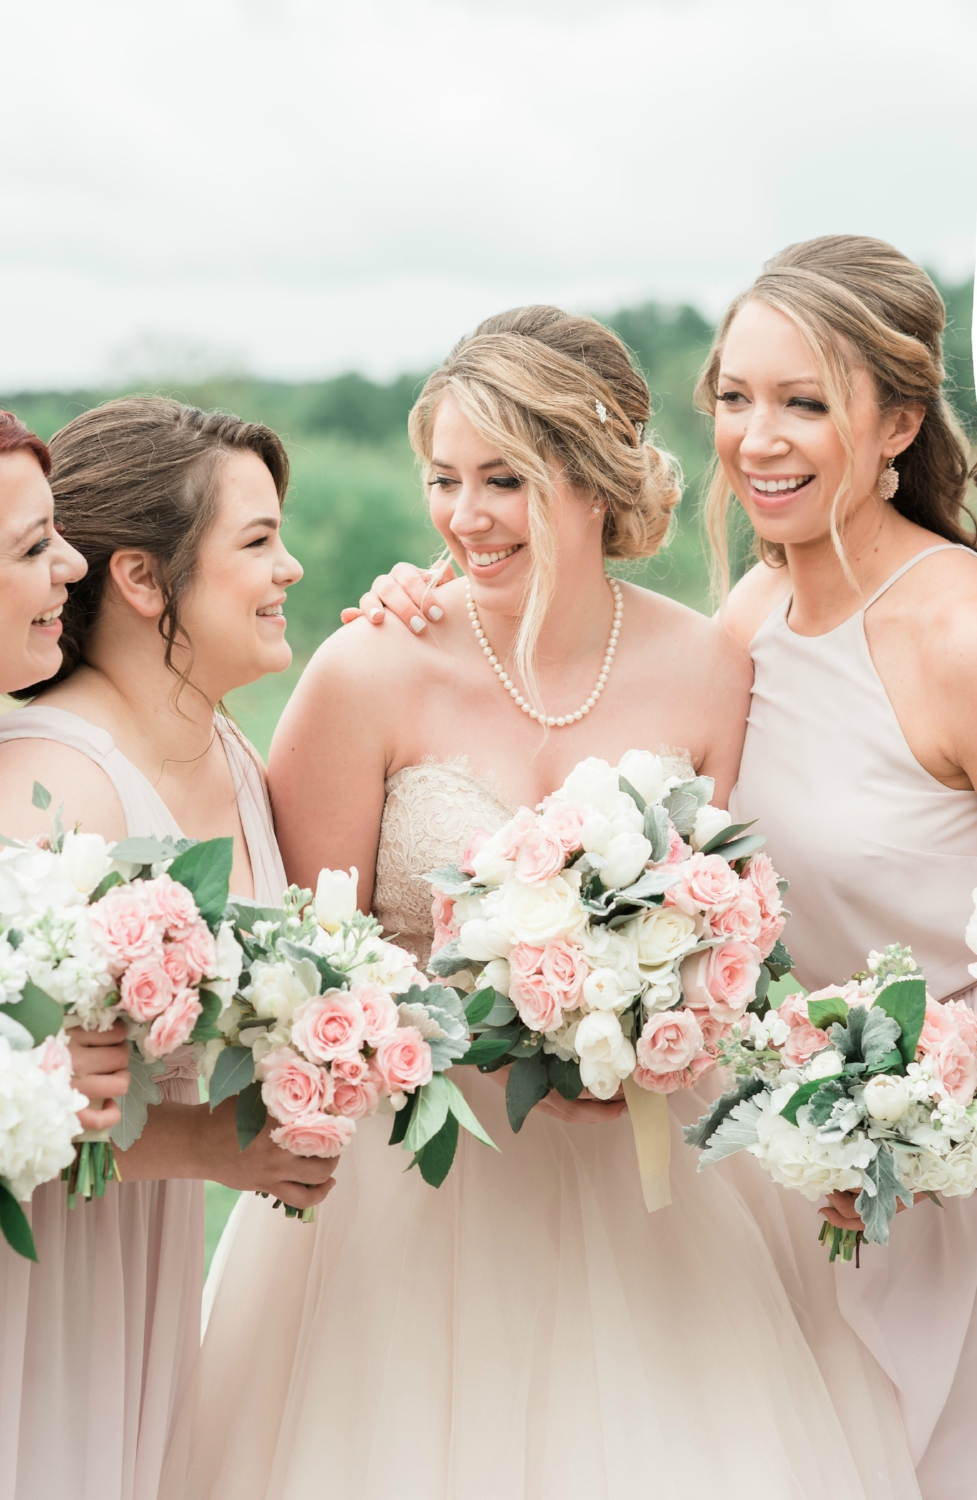 Candace and a few beauties in her bridal party.